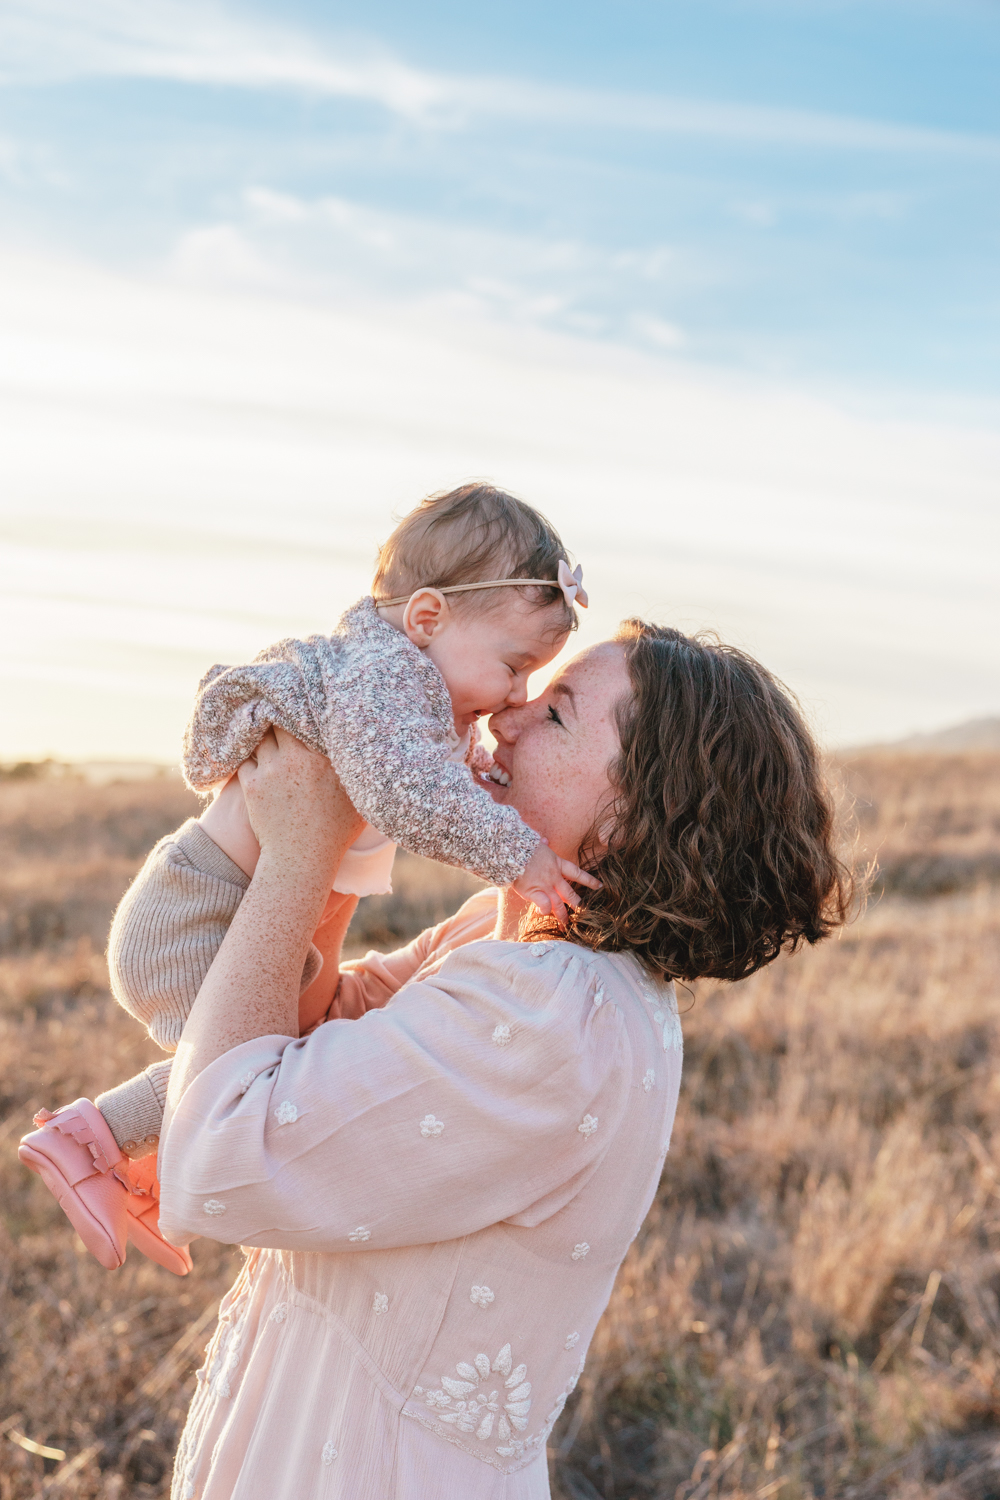 FAMILY AND MATERNITY PORTRAITS